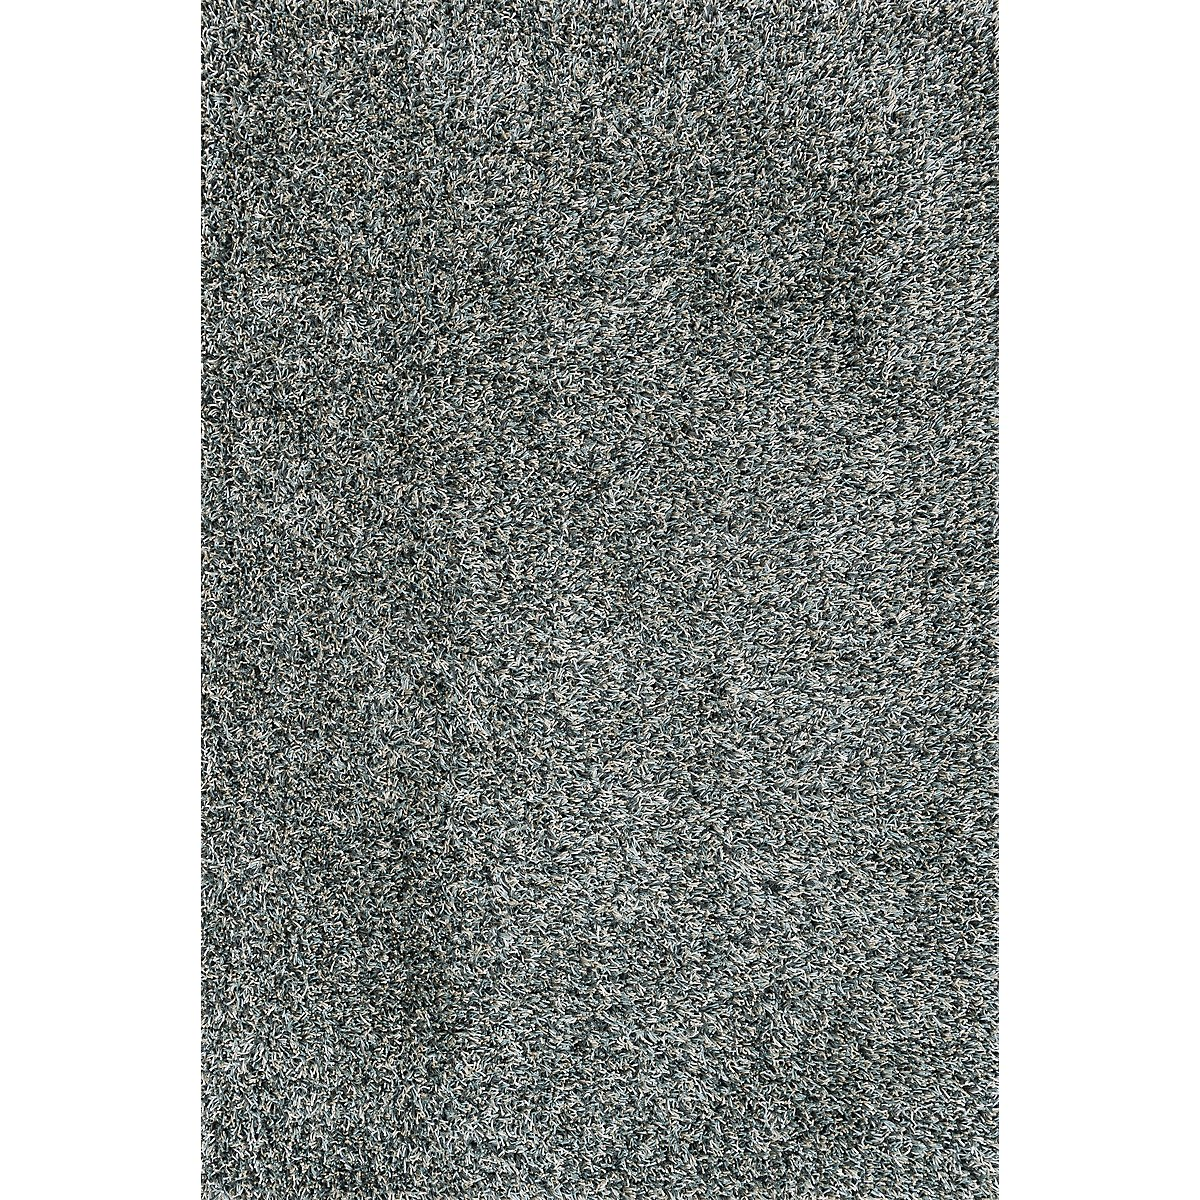 Carrera Light Blue 8X10 Area Rug